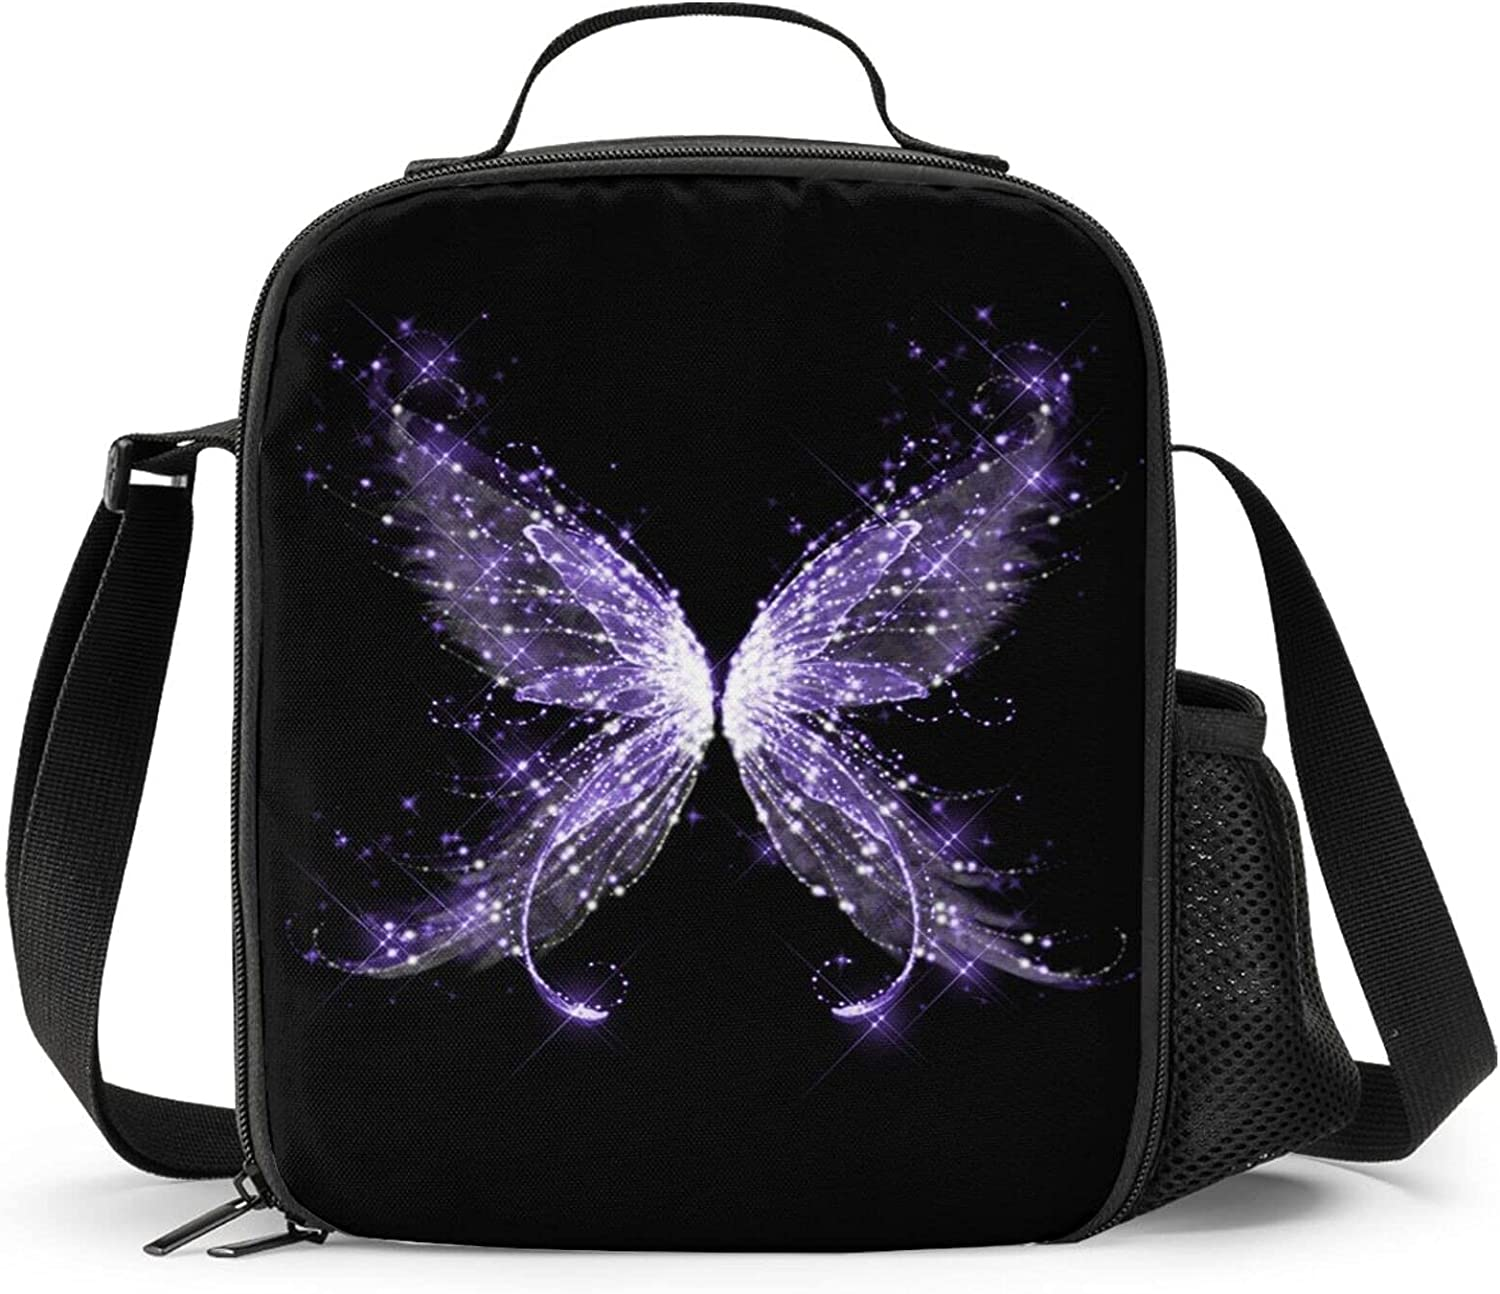 Niukom Purple Butterfly Reusable Lunch Bag Kid'S Insulated Tote Lunch Box Food Bag Cooler Bag Meal Bag Food Container For Boys Girls Child Back To School Travel Picnic Beach Camping Travel